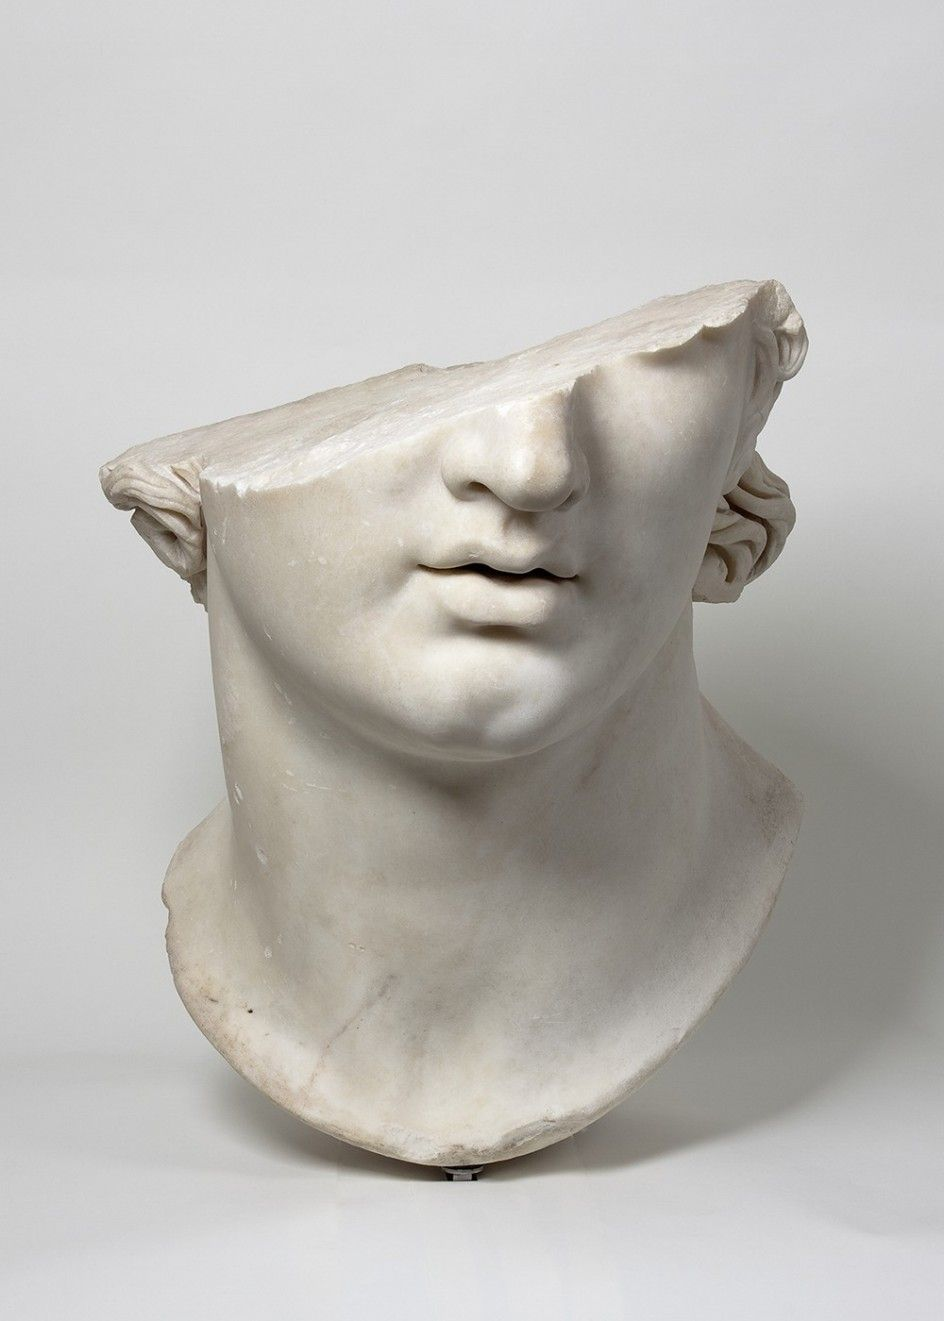 Fragmentary+Colossal+Head+of+a+Youth+-+Greek,+Hellenistic+period,+2nd+century+B.C.